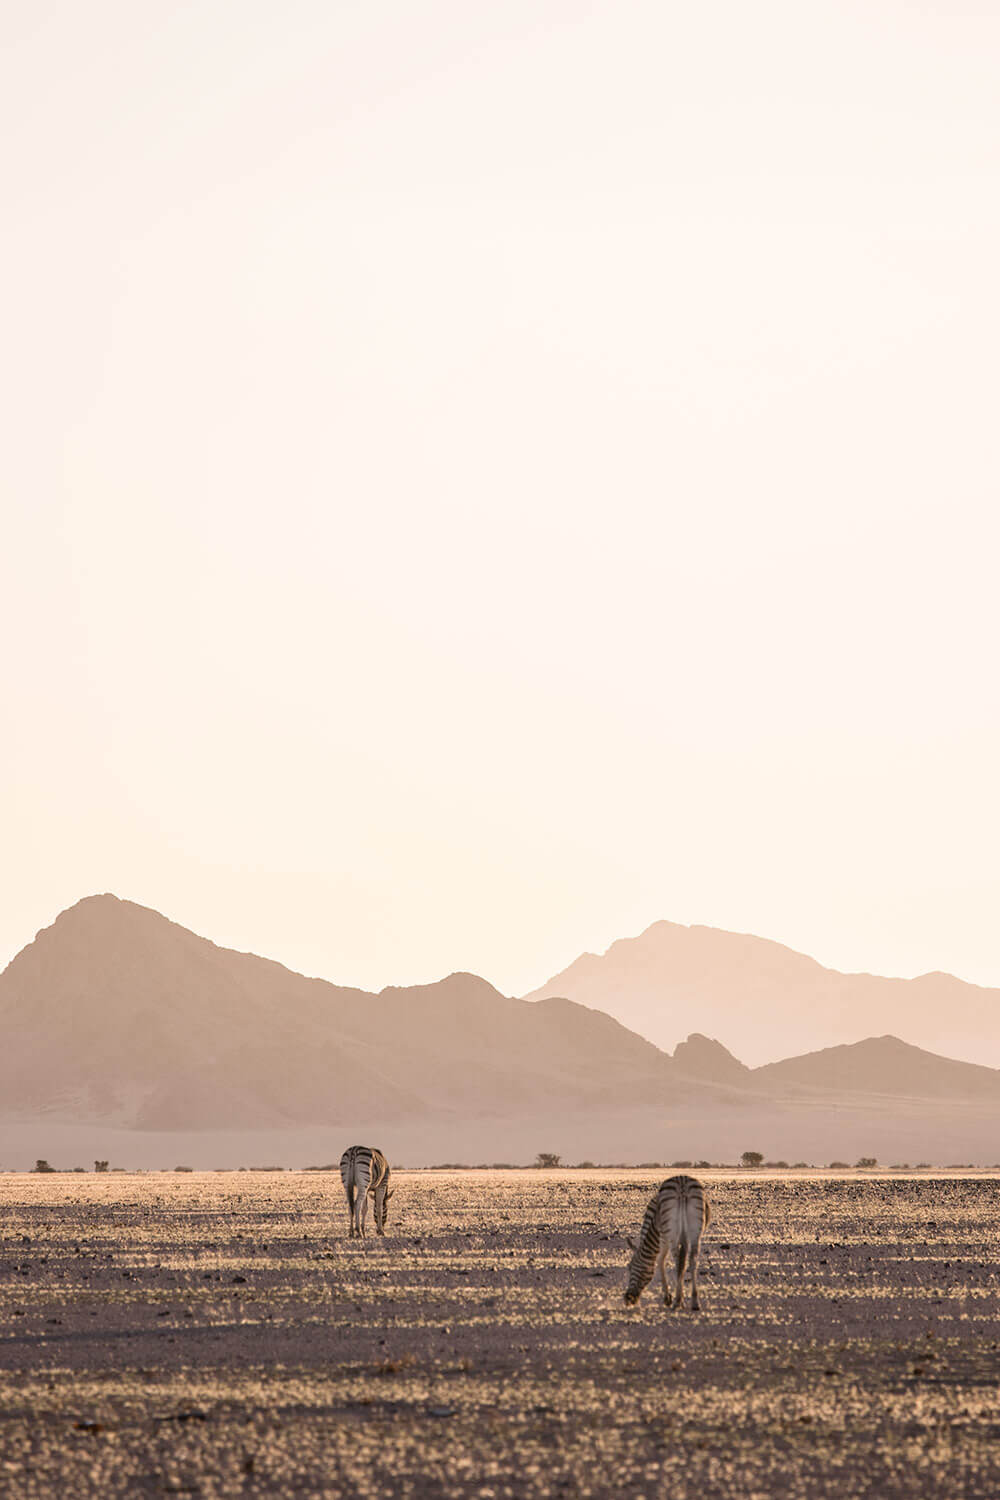 Zebras roaming the dry plains of the Namib desert